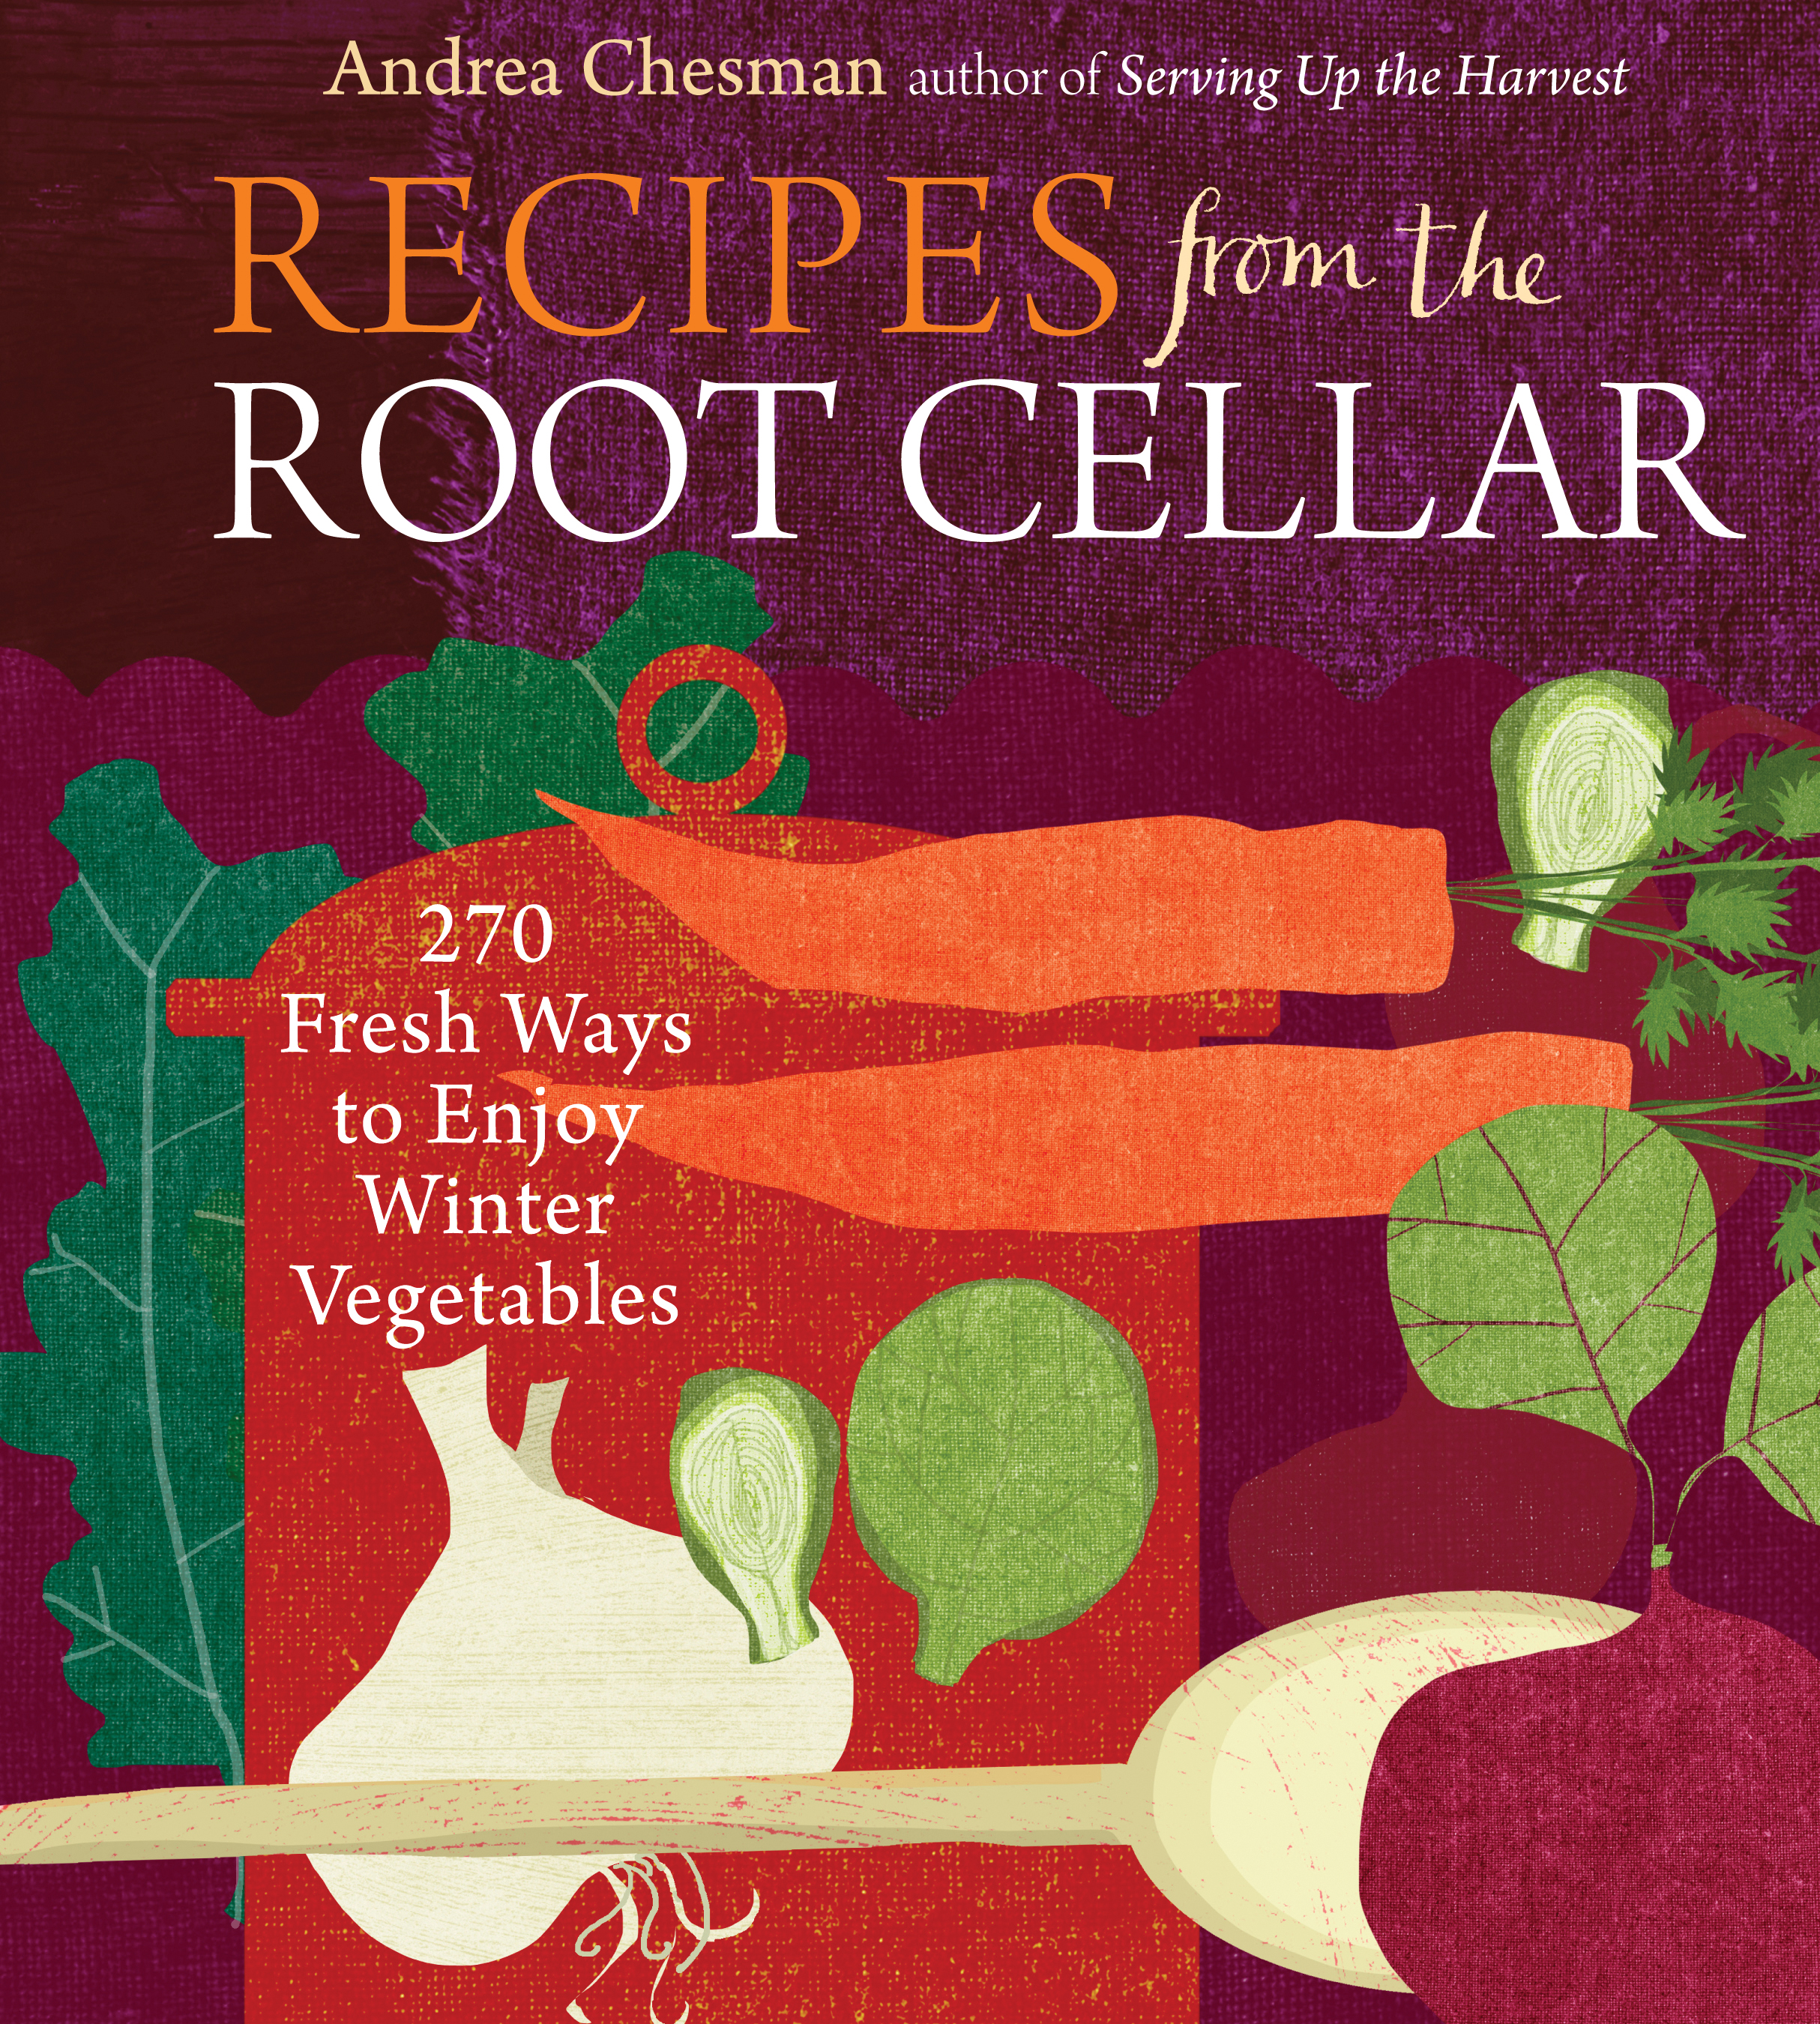 Recipes from the Root Cellar 270 Fresh Ways to Enjoy Winter Vegetables - Andrea Chesman